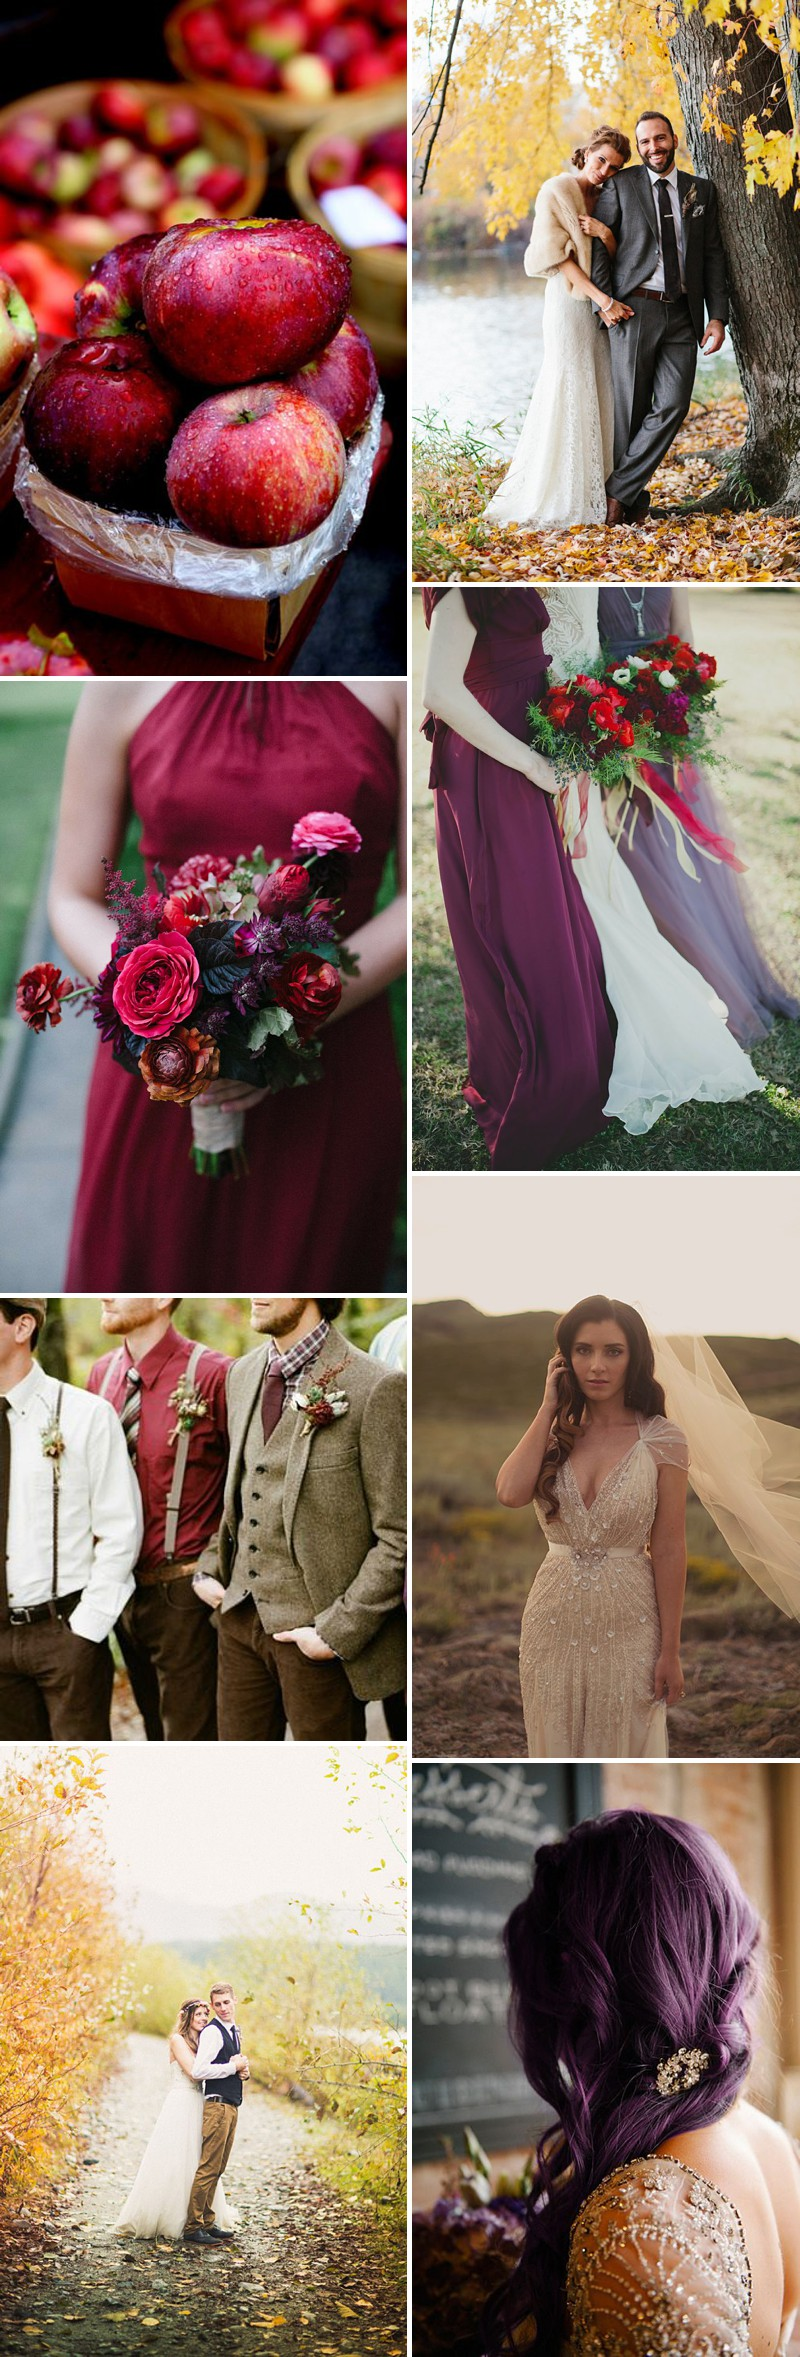 Rock My Wedding Announces Their Autumn Pinterest Competition Winner_0001